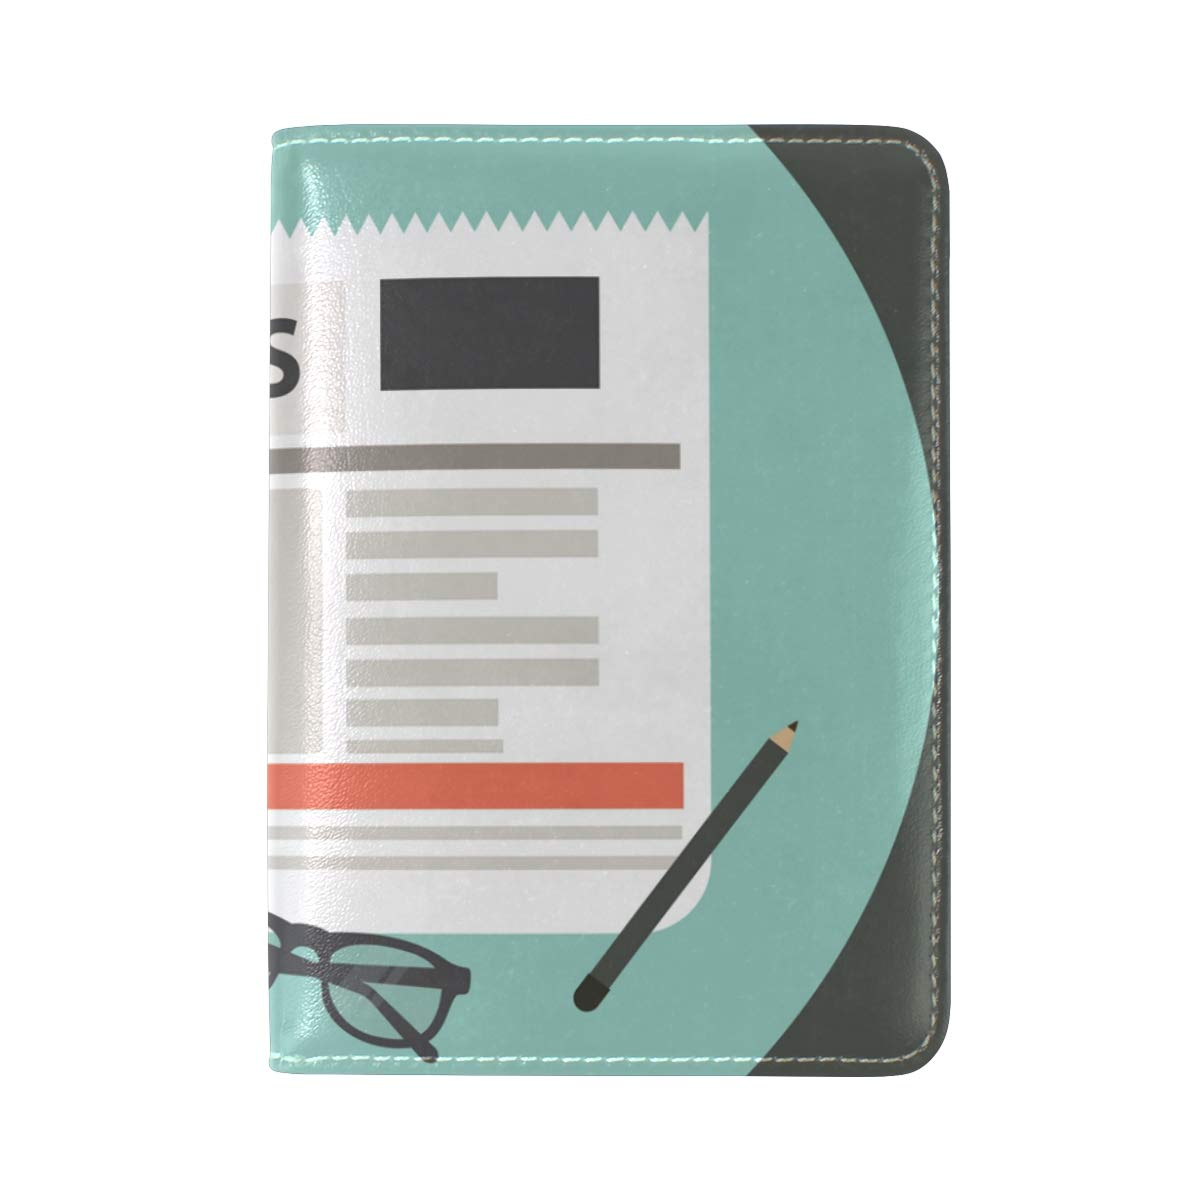 Glasses Newspaper Leather USA Passport Holder Cover Travel Wallet Case Protector by CHAYUN